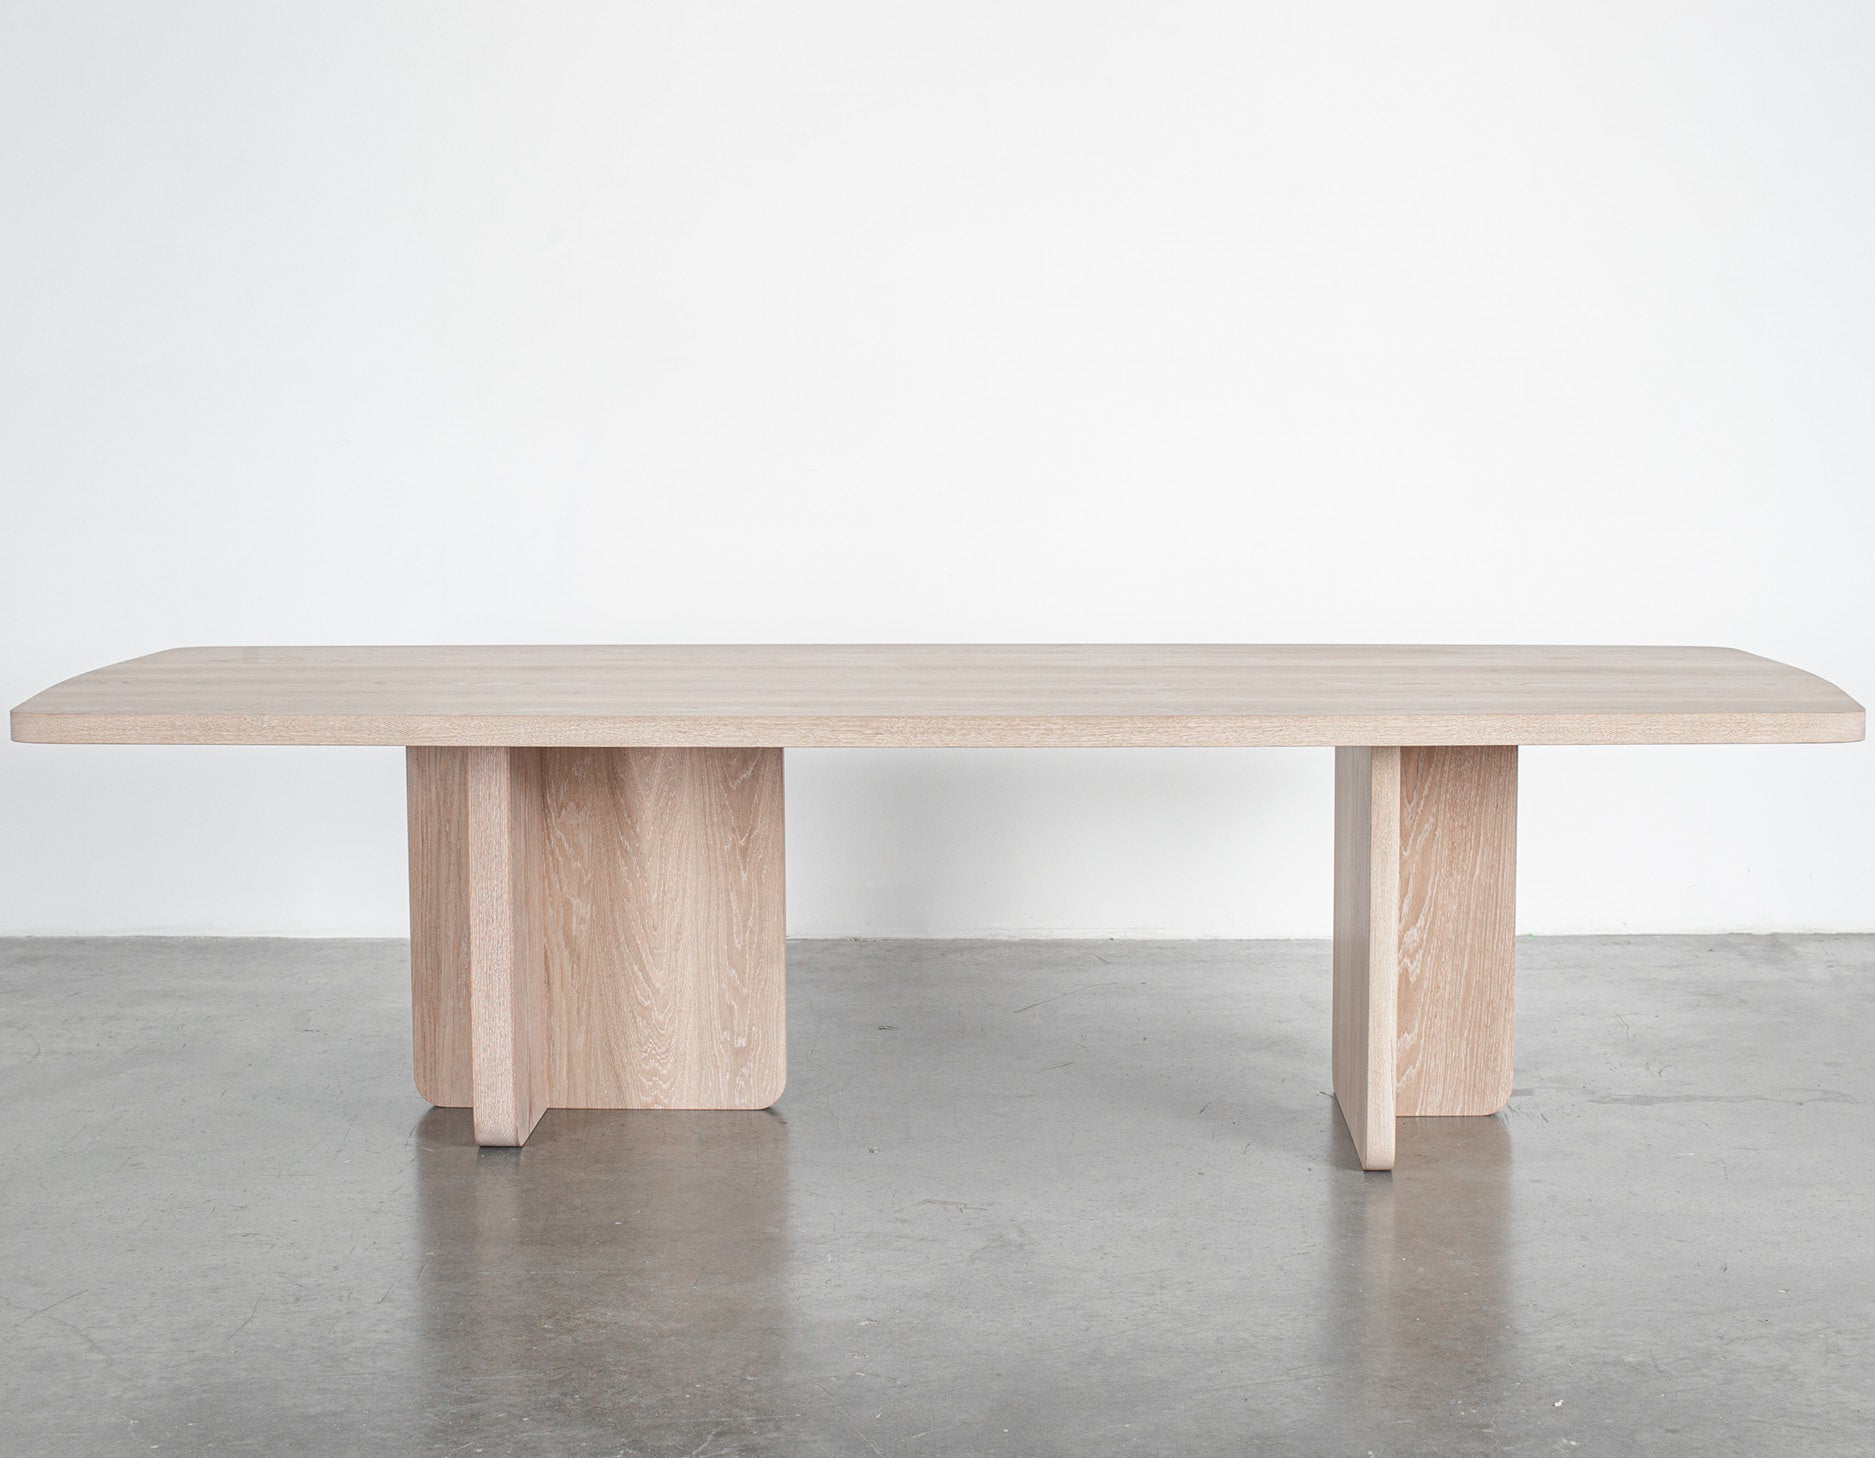 Provide X Lock & Mortice - Provide Series - Dining Table - White Oak